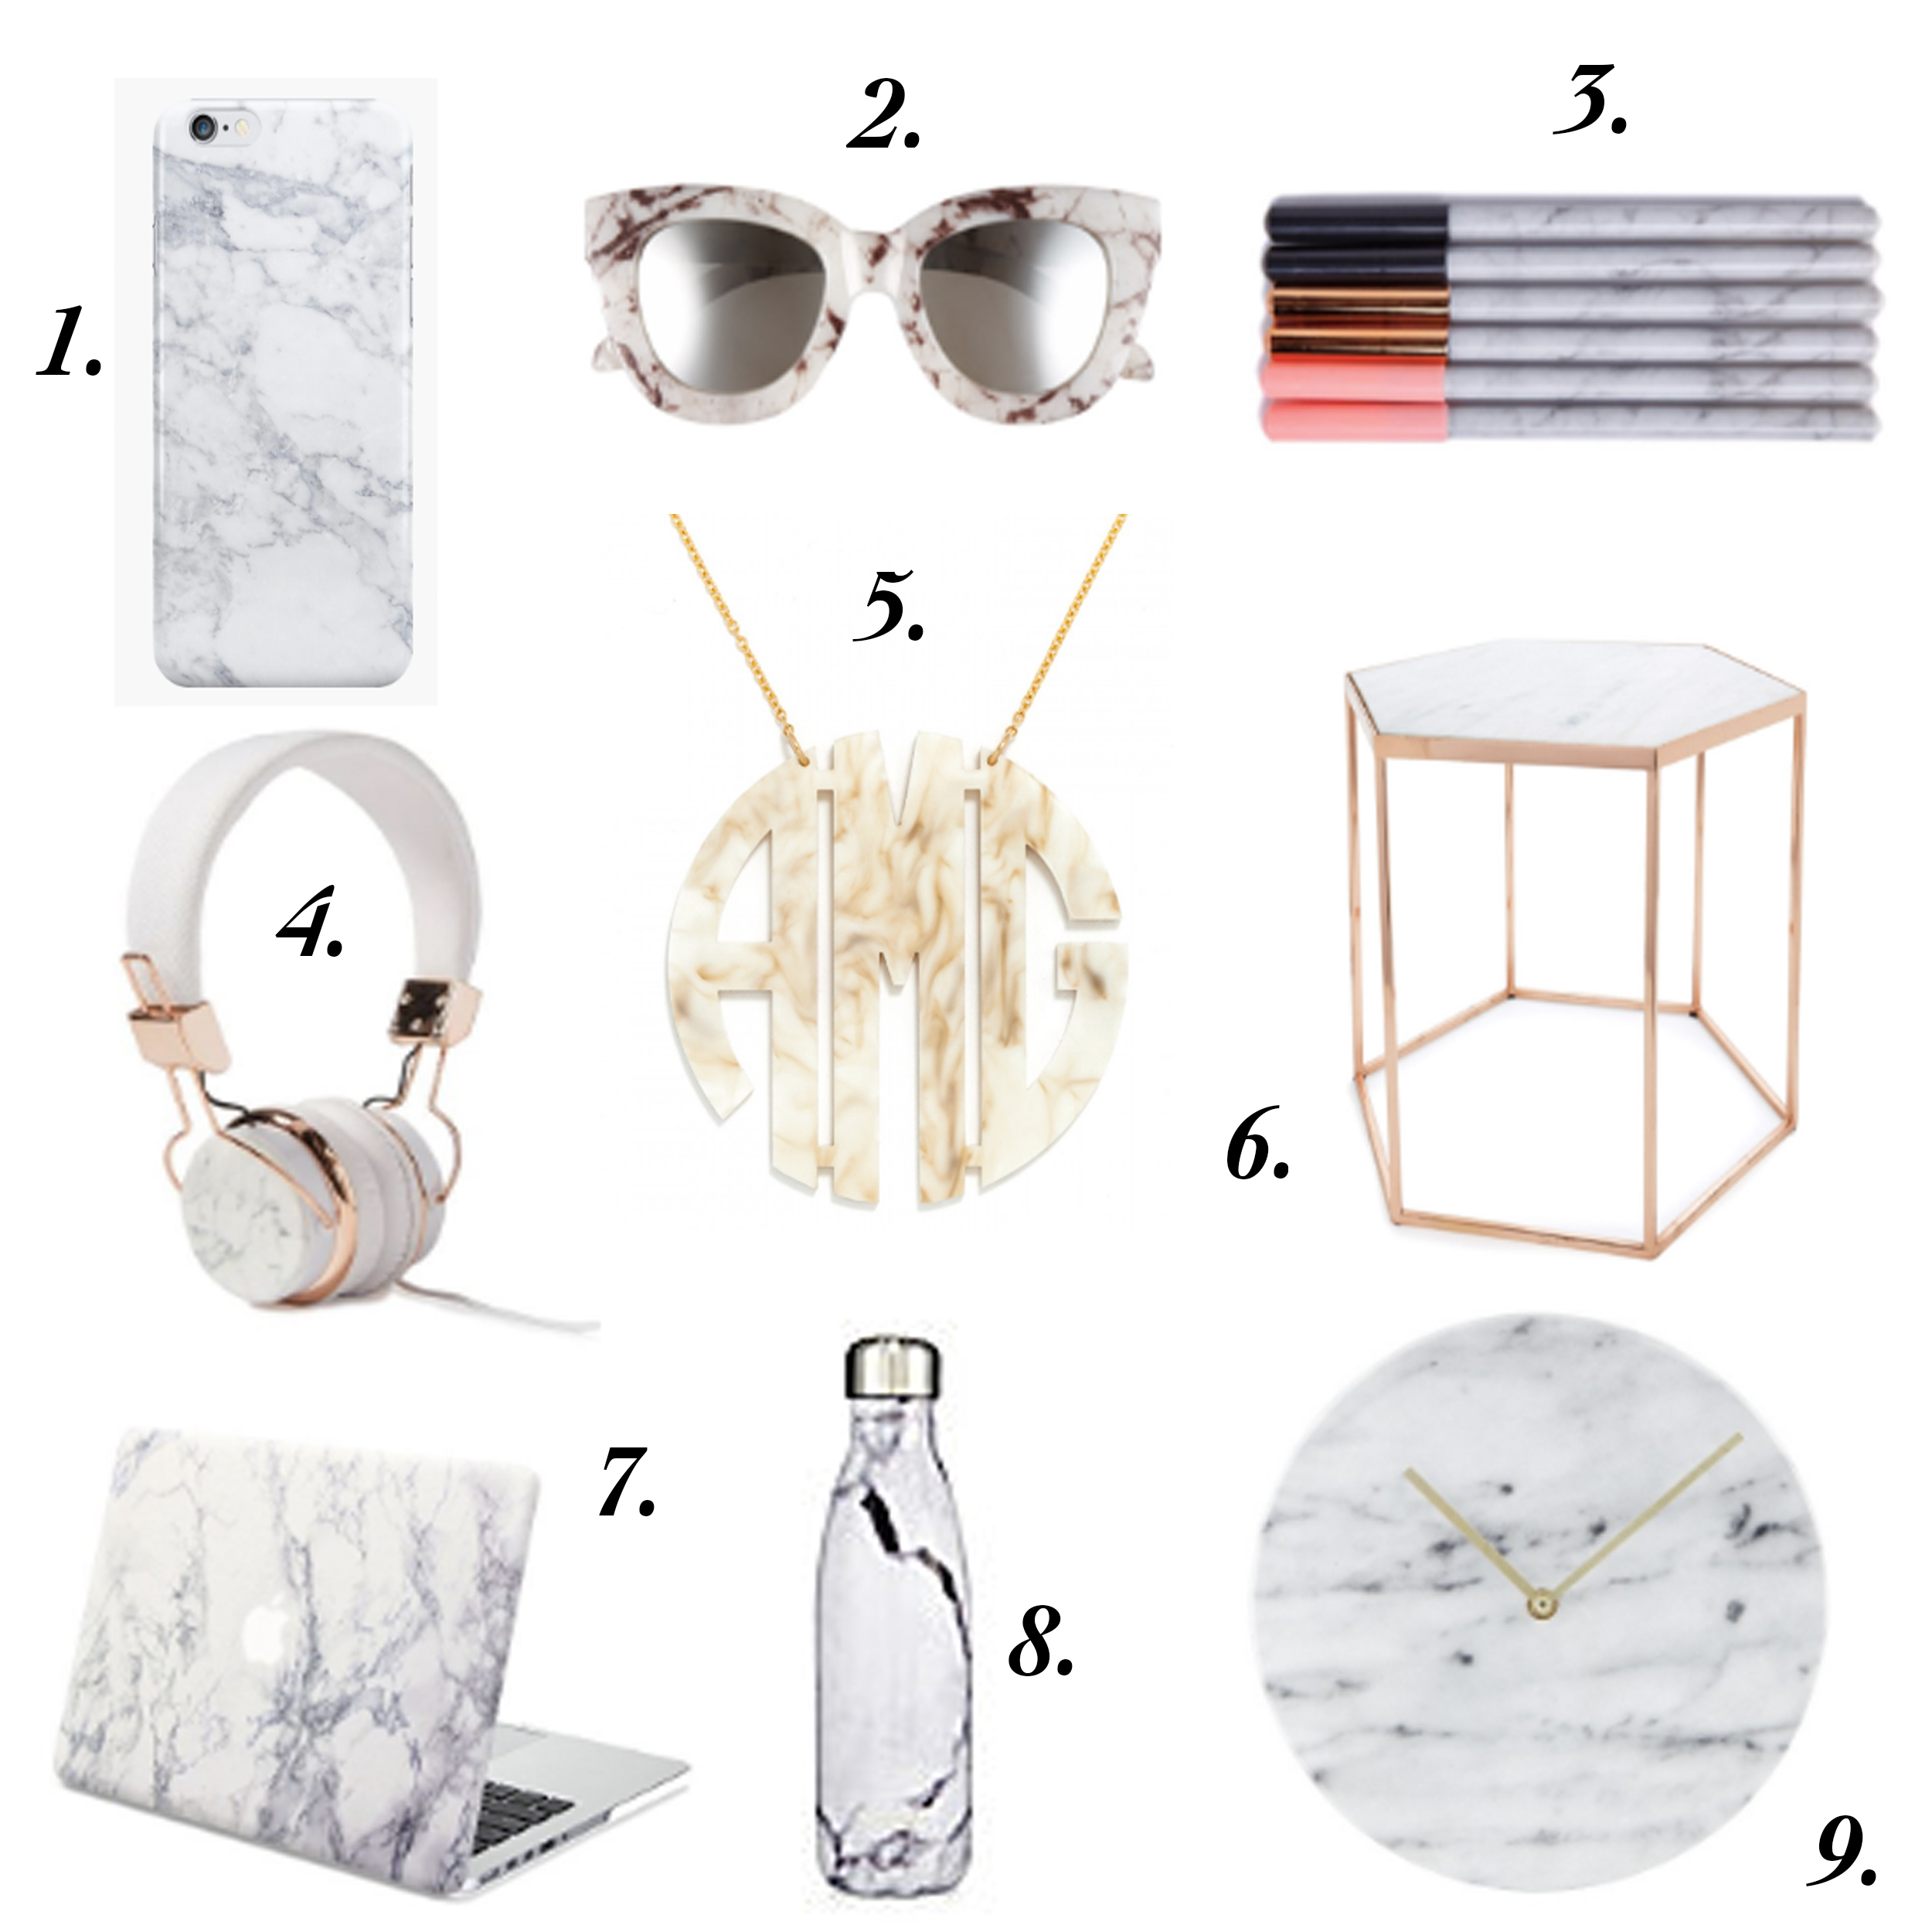 missyonmadison, marble, marblie iphone case, marble laptop case, marble macbook case, marble home decor, marble decor, marble accessories, marble blanket, marble pillow, marble sunglasses, le specs, marble le specs sunglasses, baublebar, acrylic monogram necklace, marble monogram necklace, marble water bottle, marble pens, marble notebook, marble clock, target, target home, marble headphones, la blogger, interior inspo, home decor,